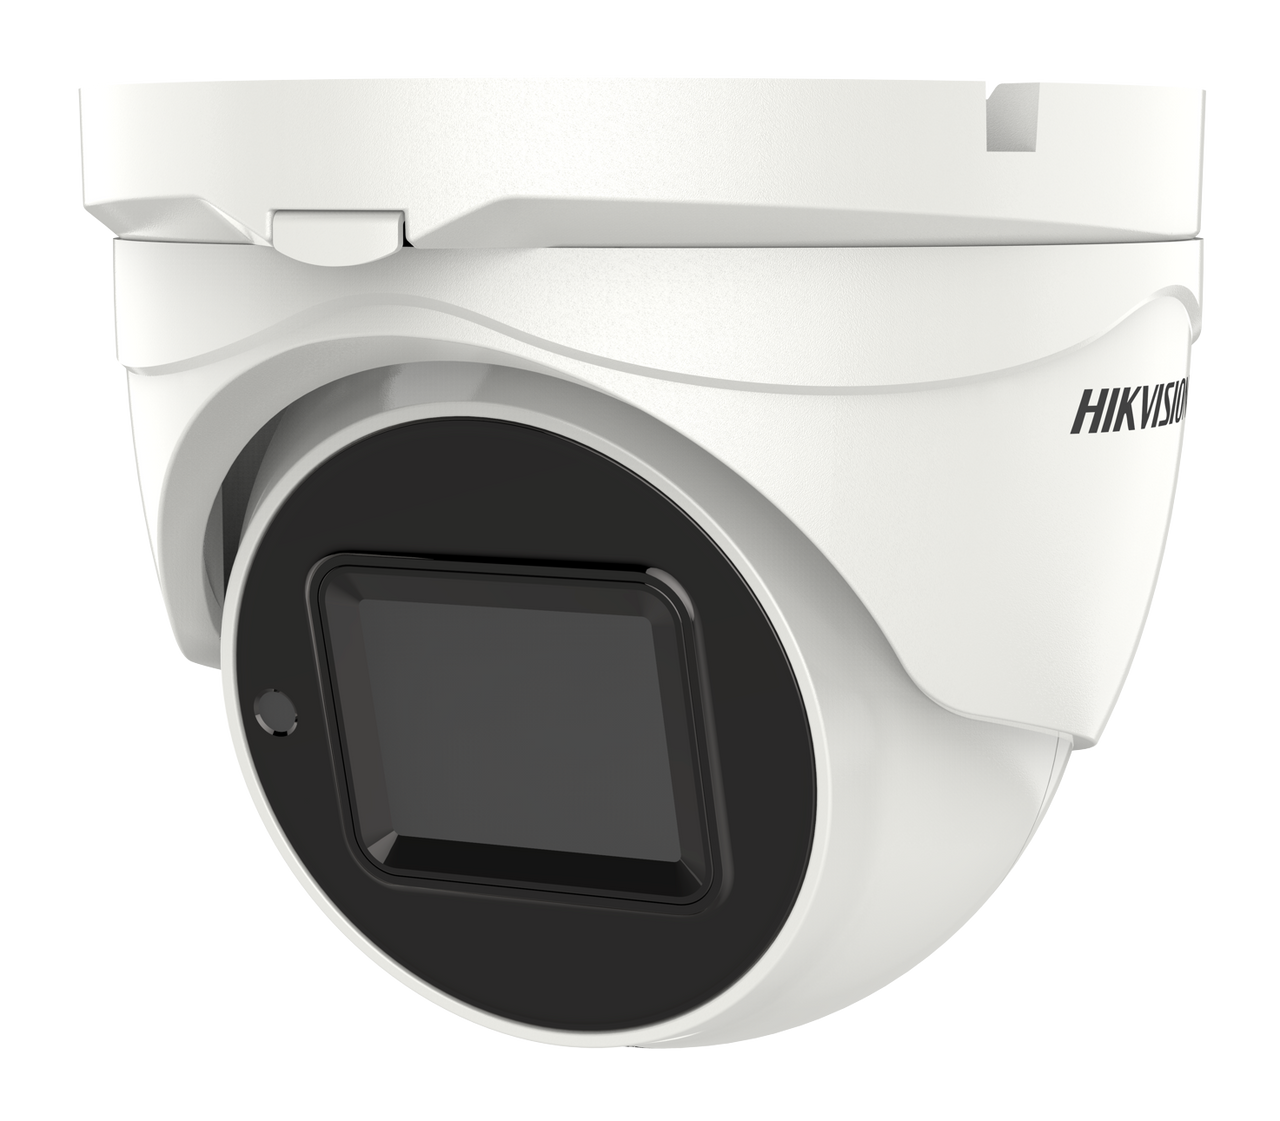 Hikvision DS-2CE79U1T-IT3ZF 2.8mm-12mm Varifocal Lens  8MP EXIR Turret Dome CCTV Camera